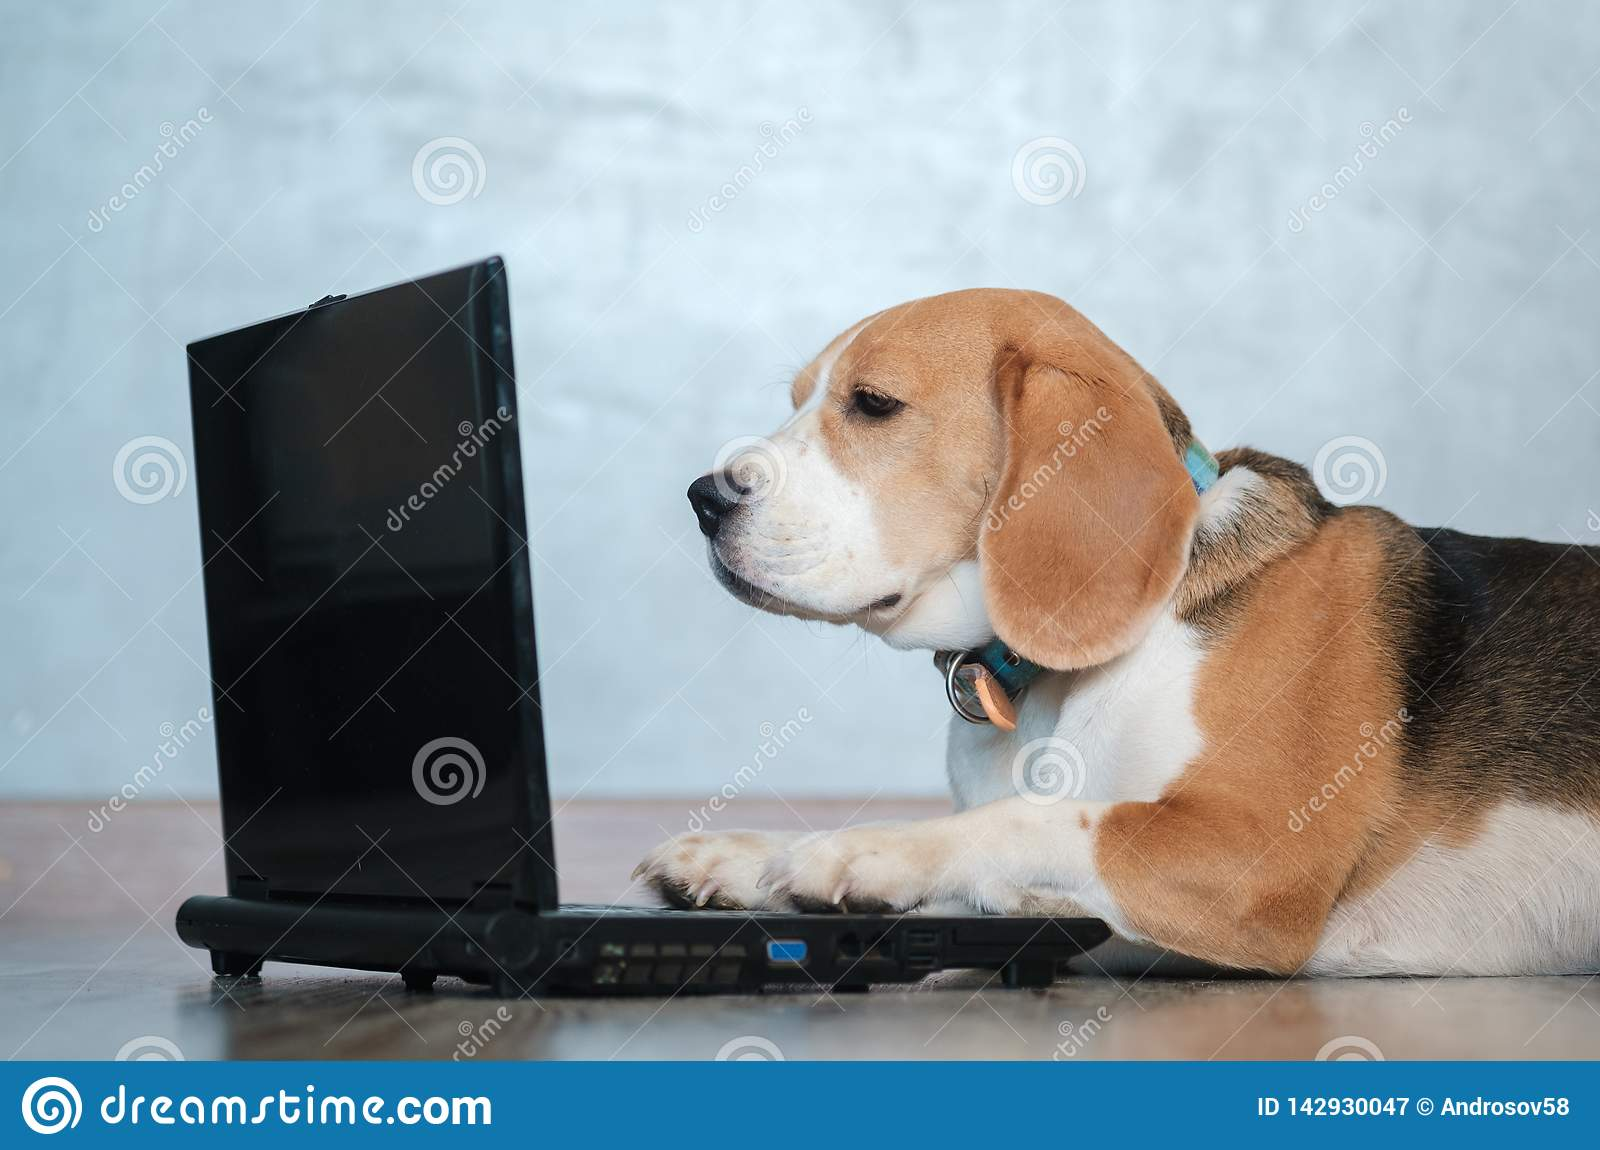 Funny Beagle Dog Looks At The Laptop Screen And Keeps His Paws On The Keyboard Stock Image Image Of Reading Pedigree 142930047